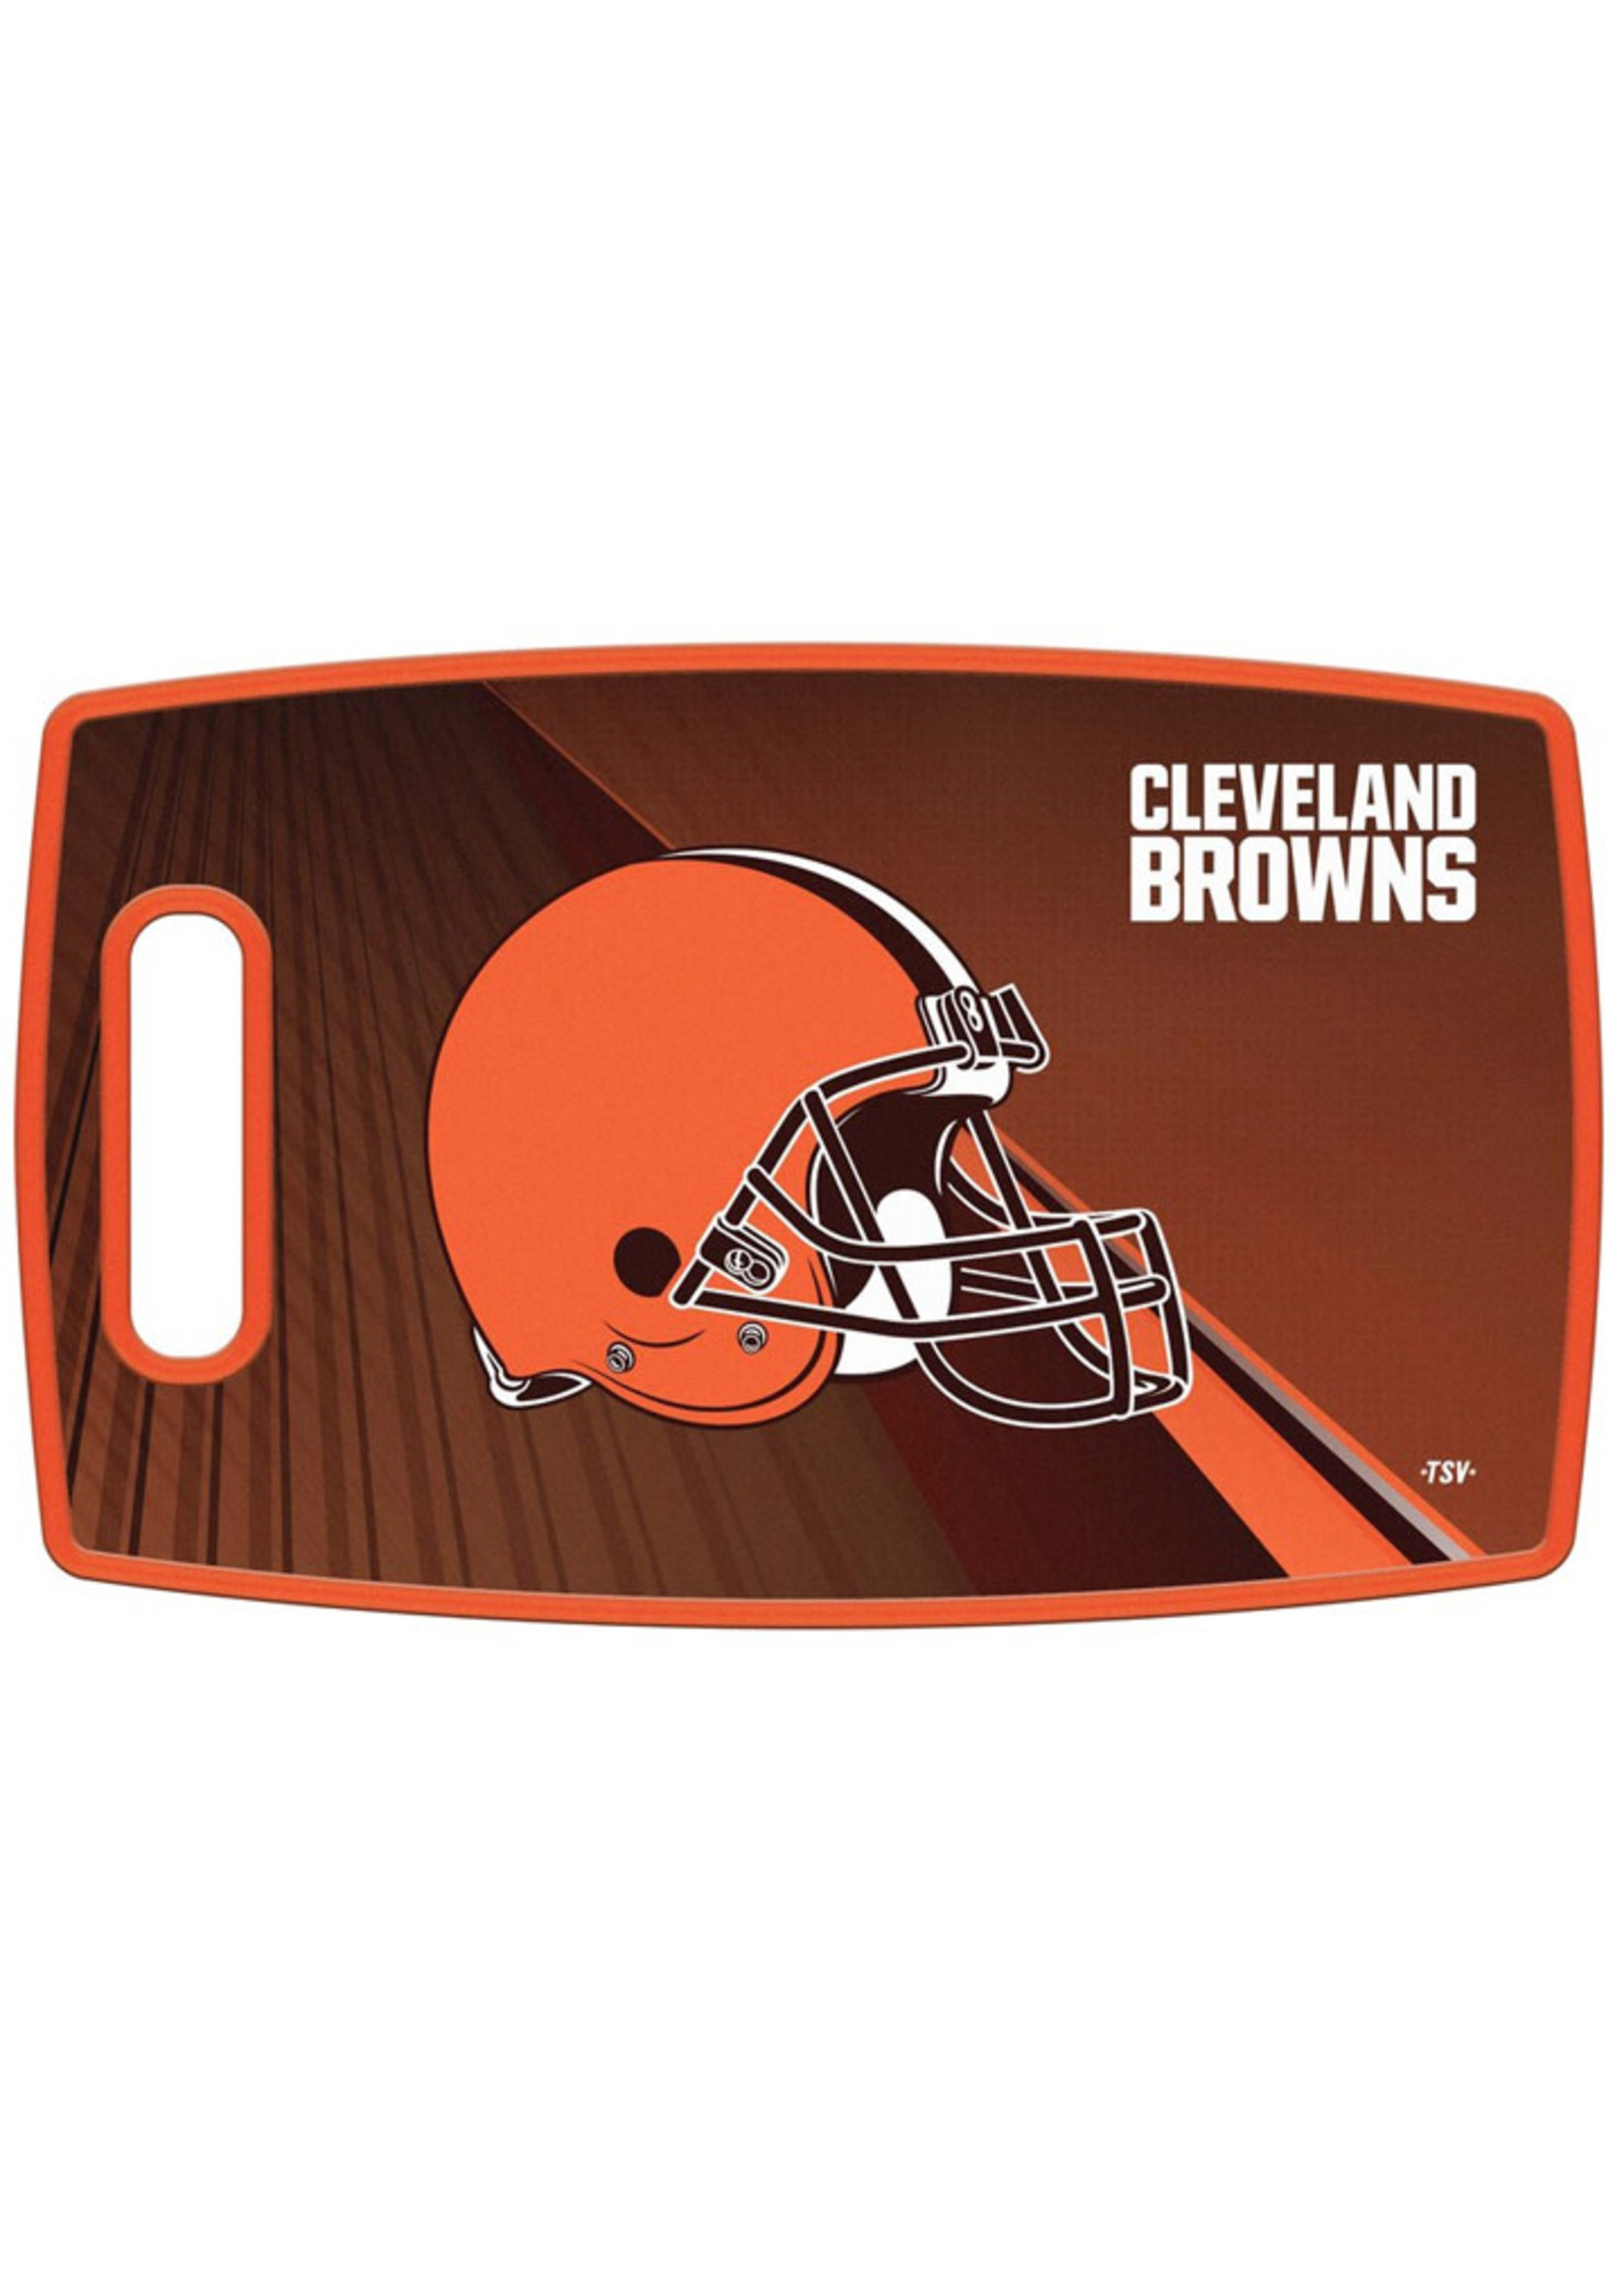 """Cleveland Browns 14.5"""" x 9.5"""" Large Cutting Board"""